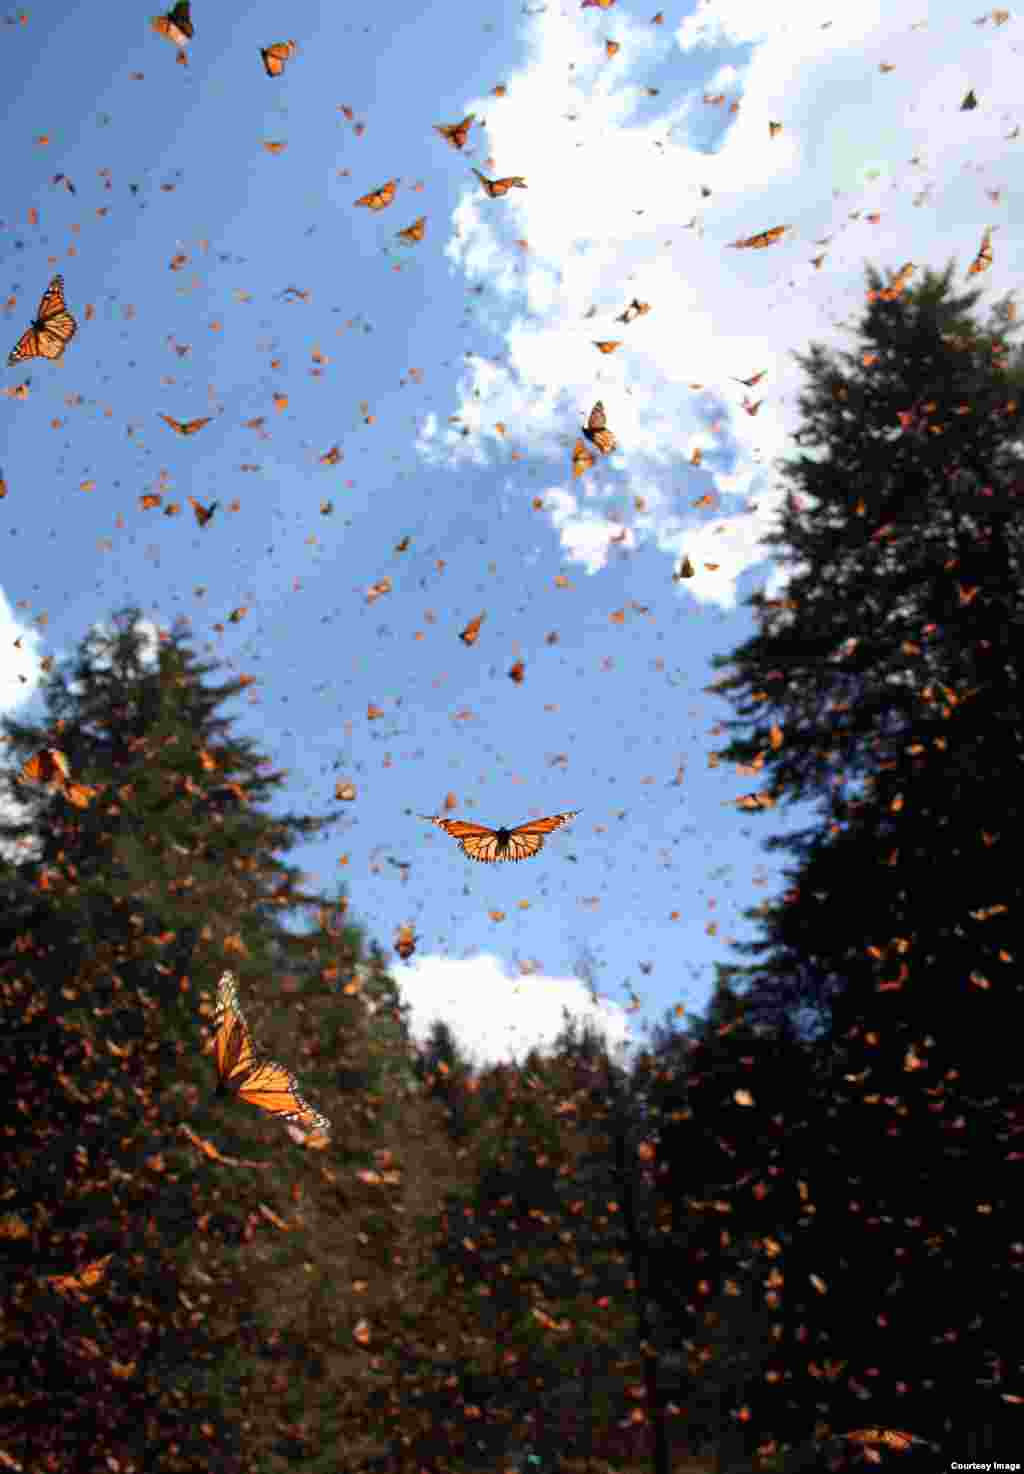 Monarchs take to the sky in Mexico. (Credit: Sonia Altizer)